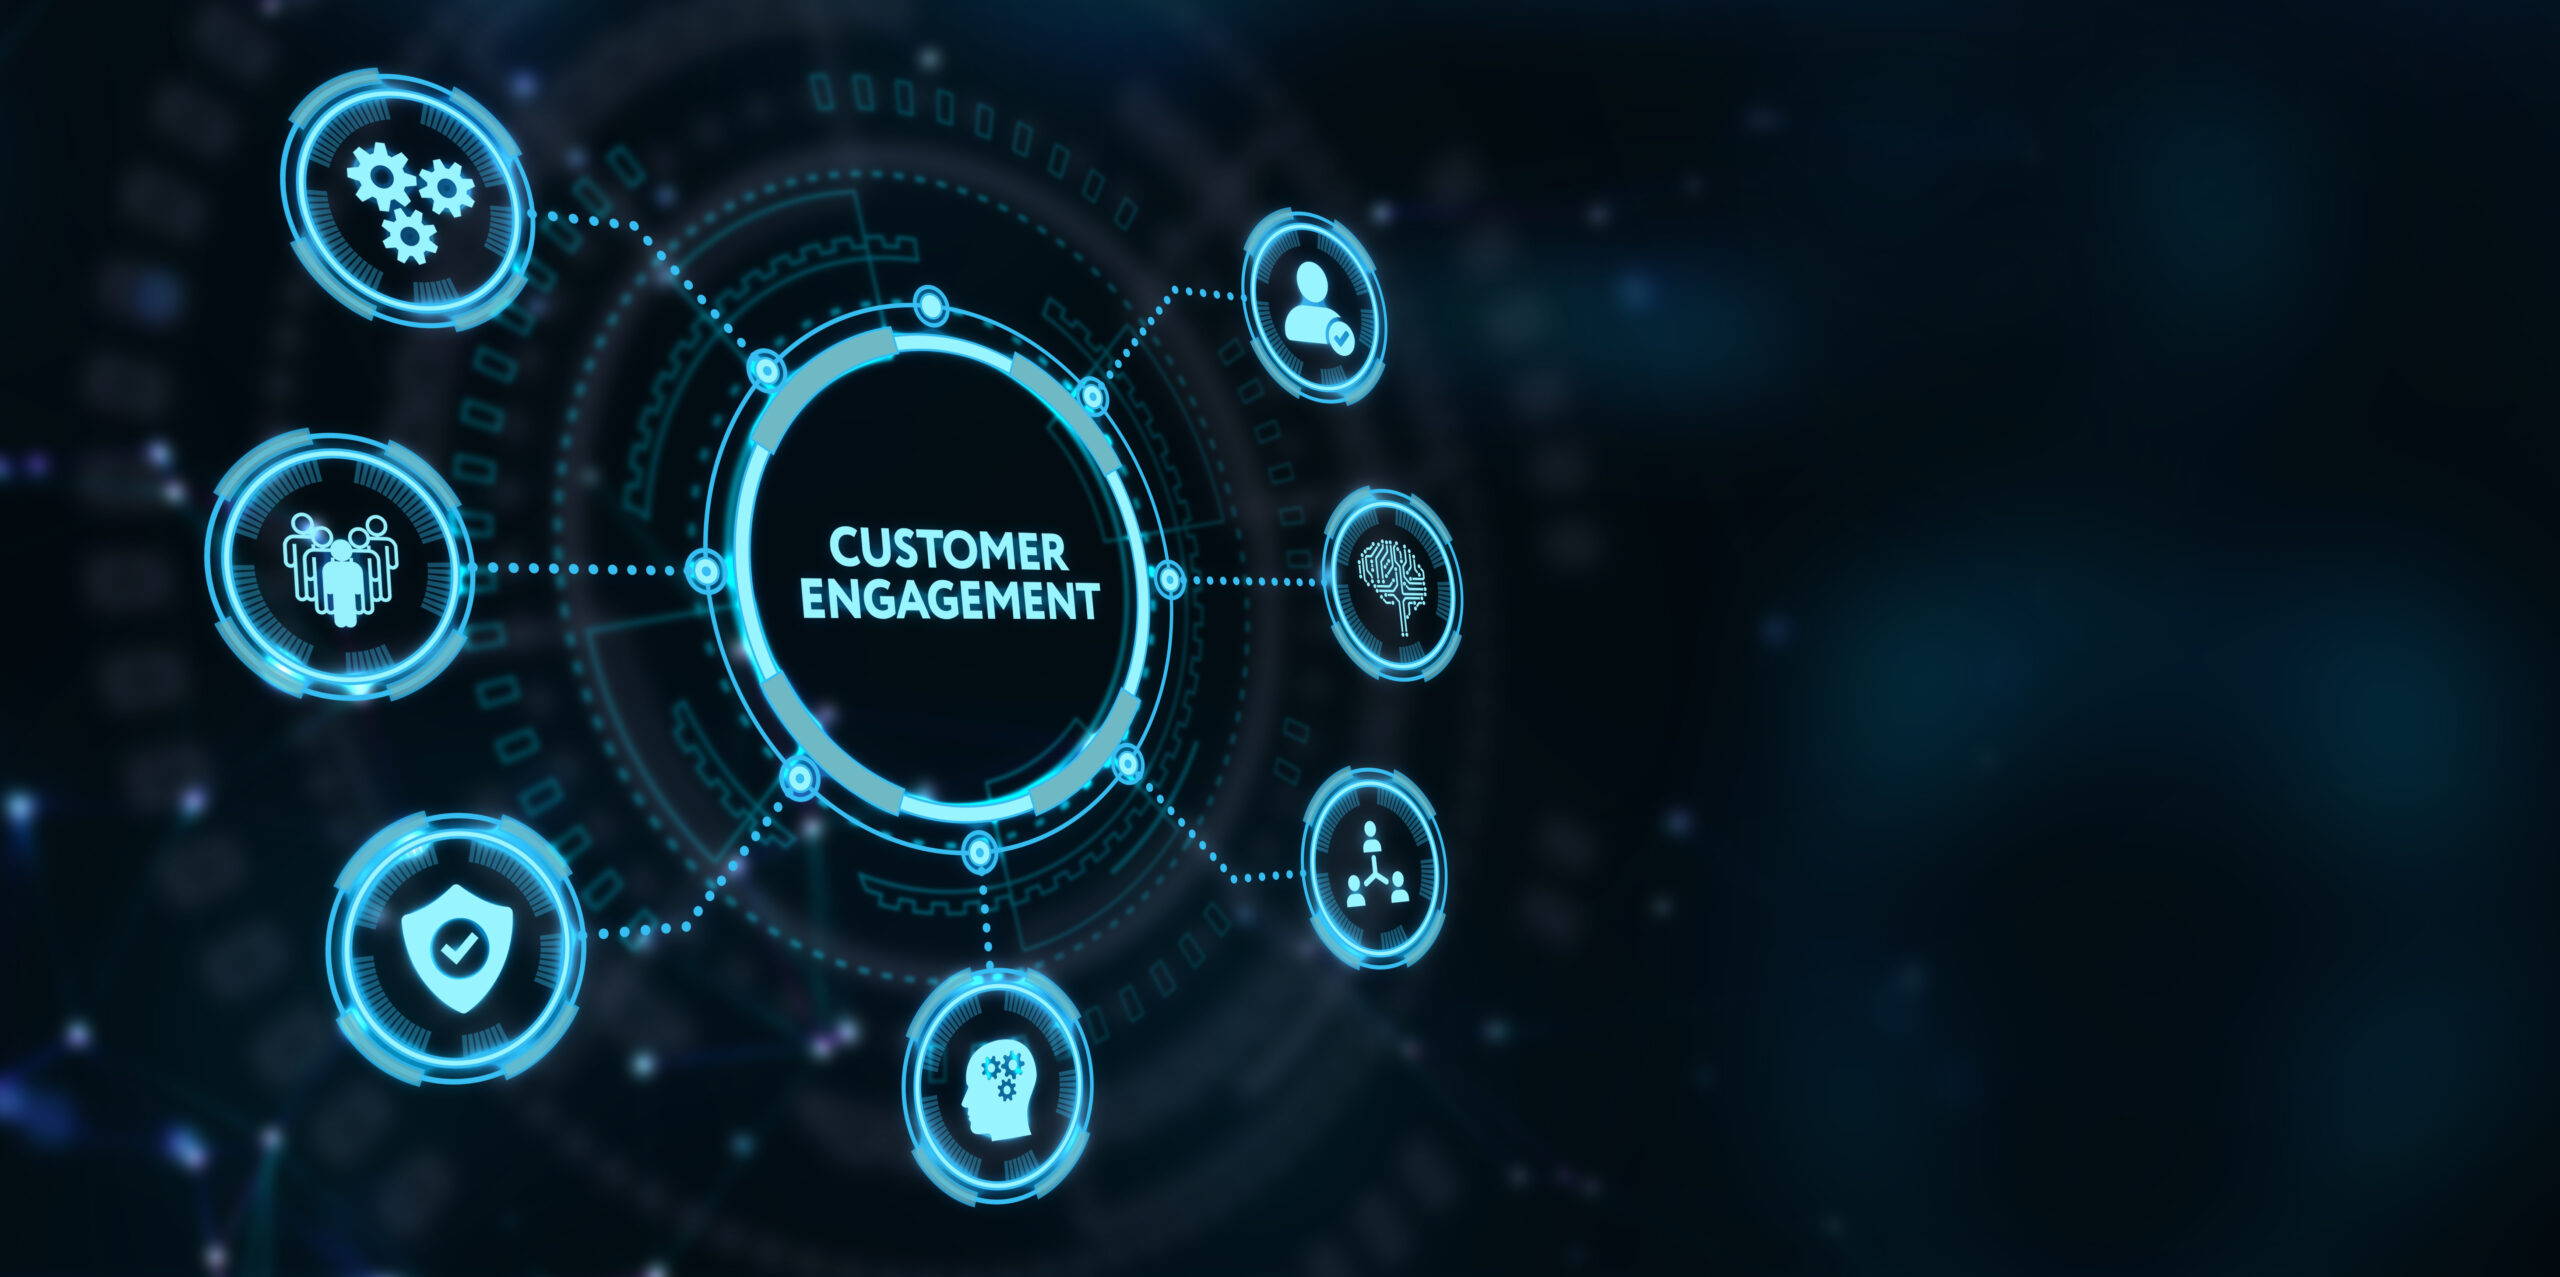 Customer Engagement- Is it time for you to Consider an Enhancement?